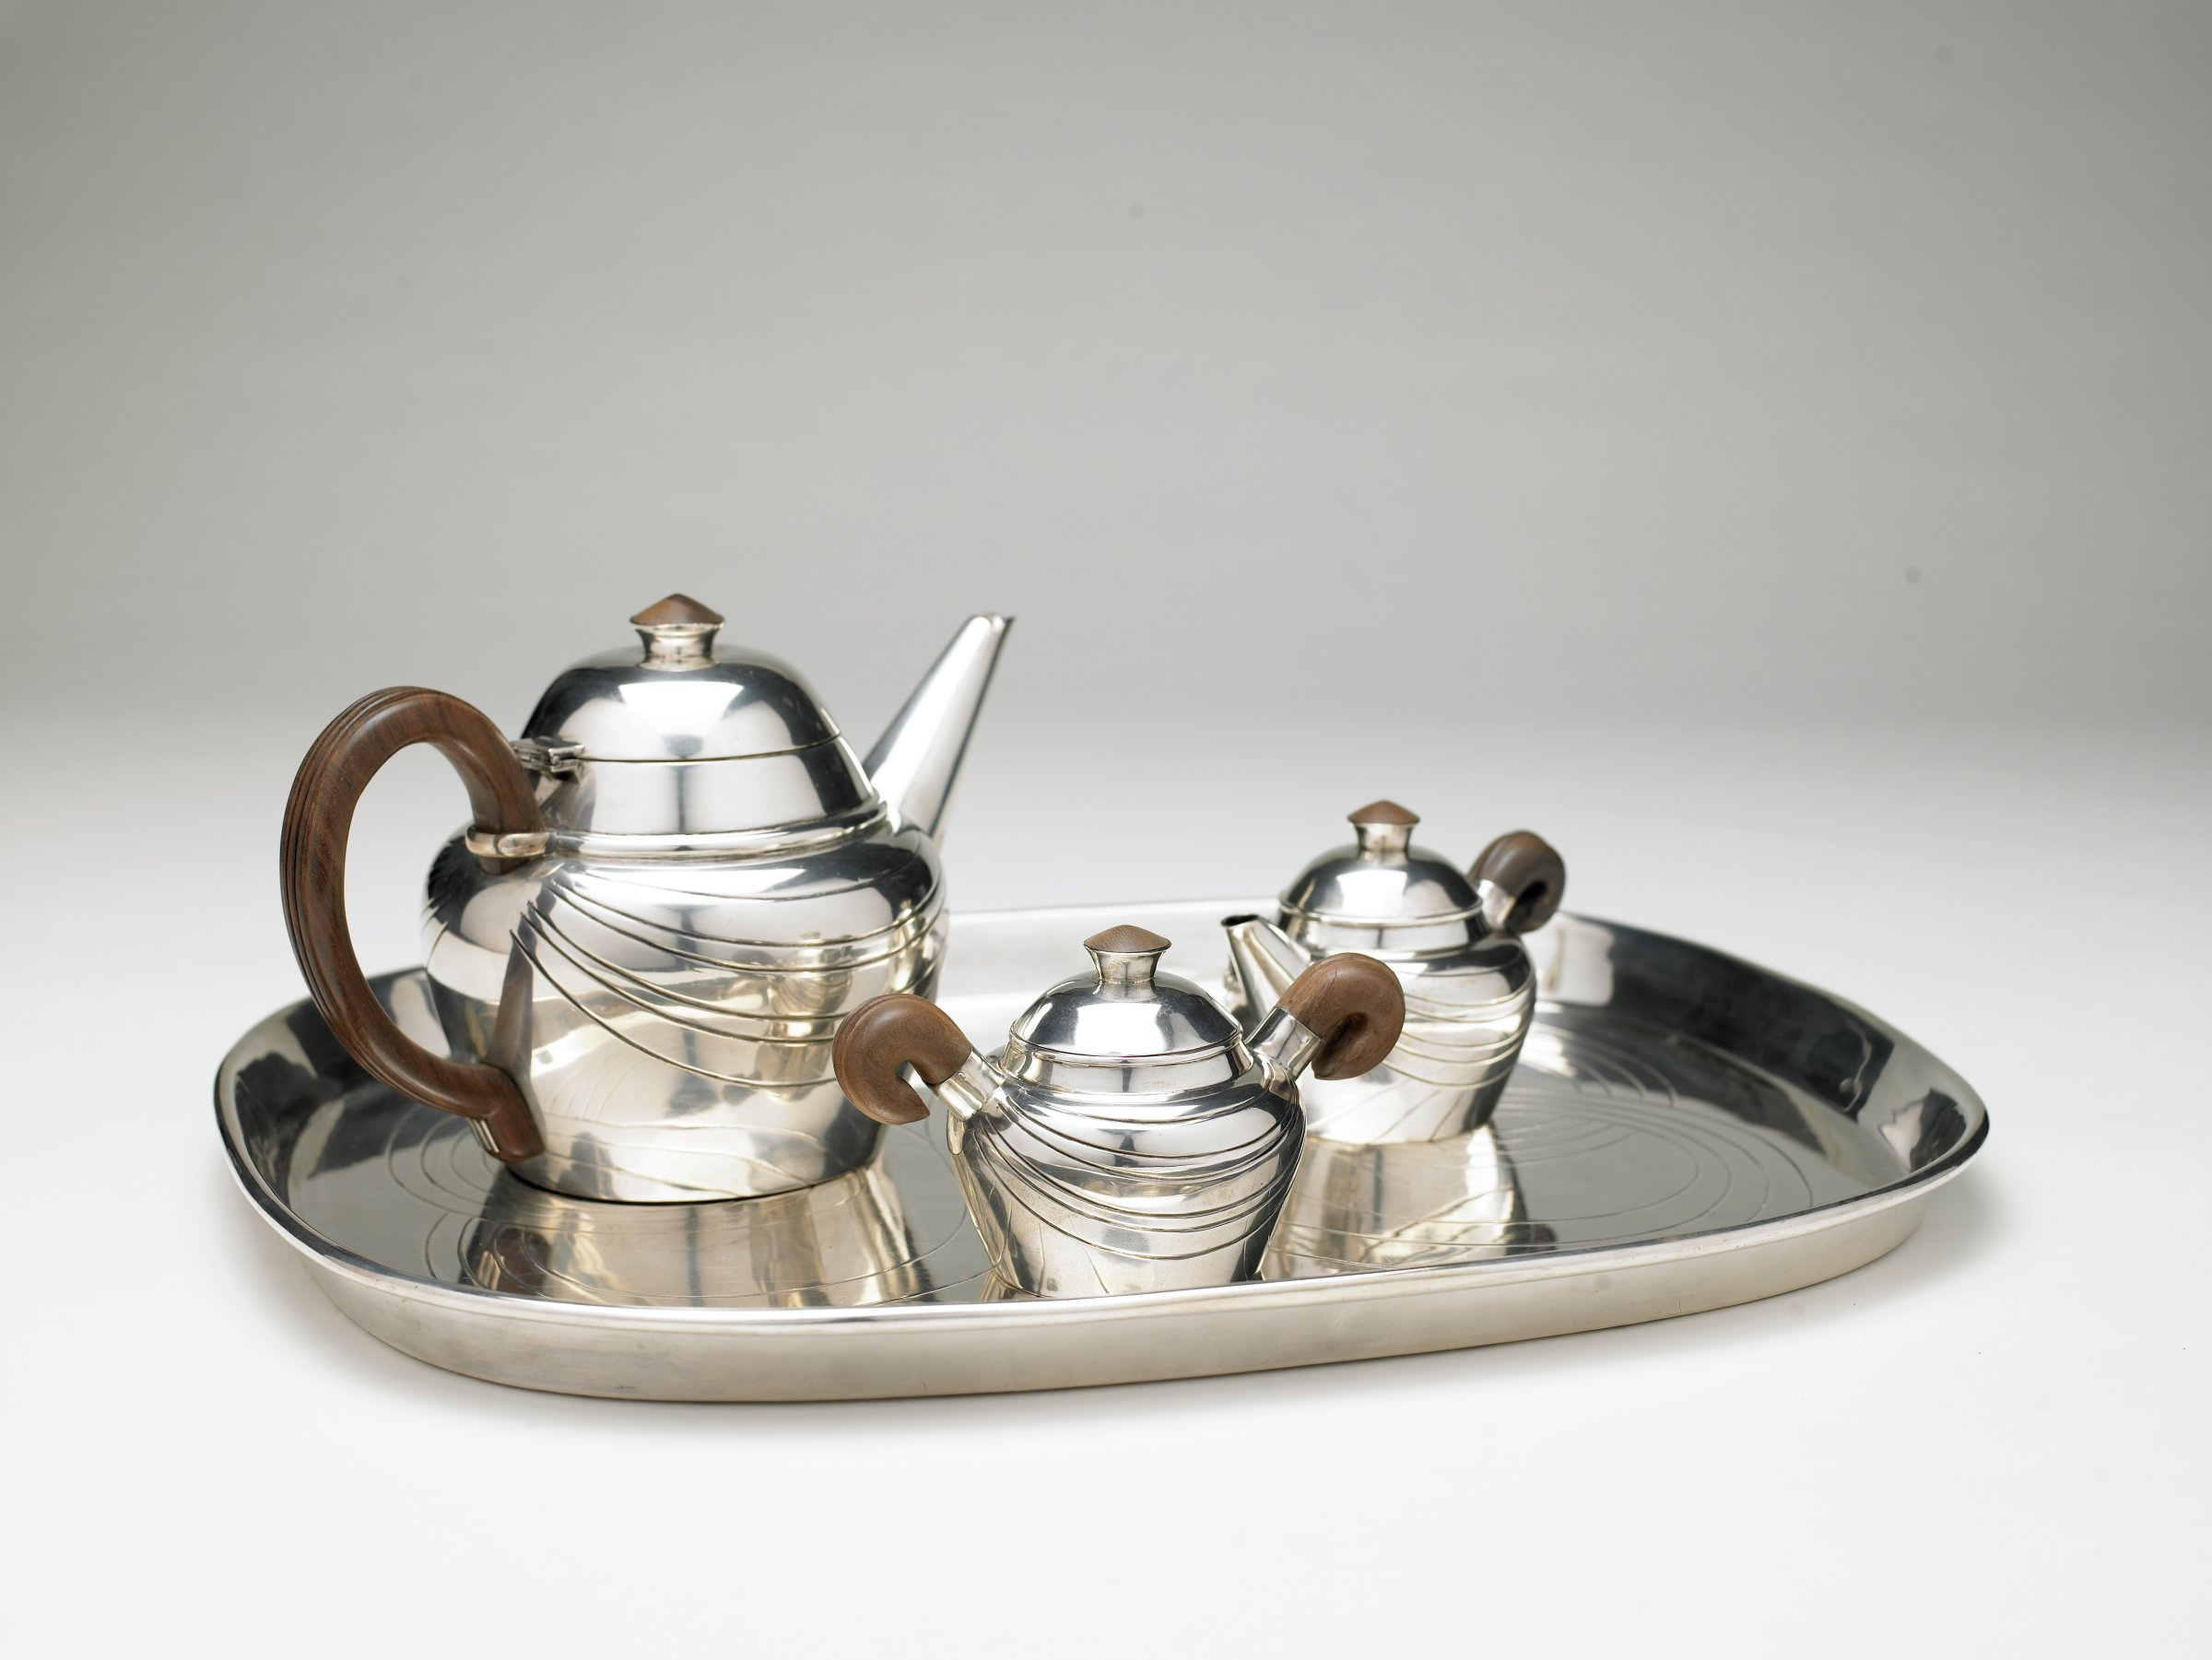 Four piece part tea service consisting of lidded teapot, covered sugar and covered creamer with matching tea tray, all pieces of baluster form with domed covers and rosewood handles and finials, engraved with stylized swags, the rectangular tray with raised rim engraved with interlaced strapwork.